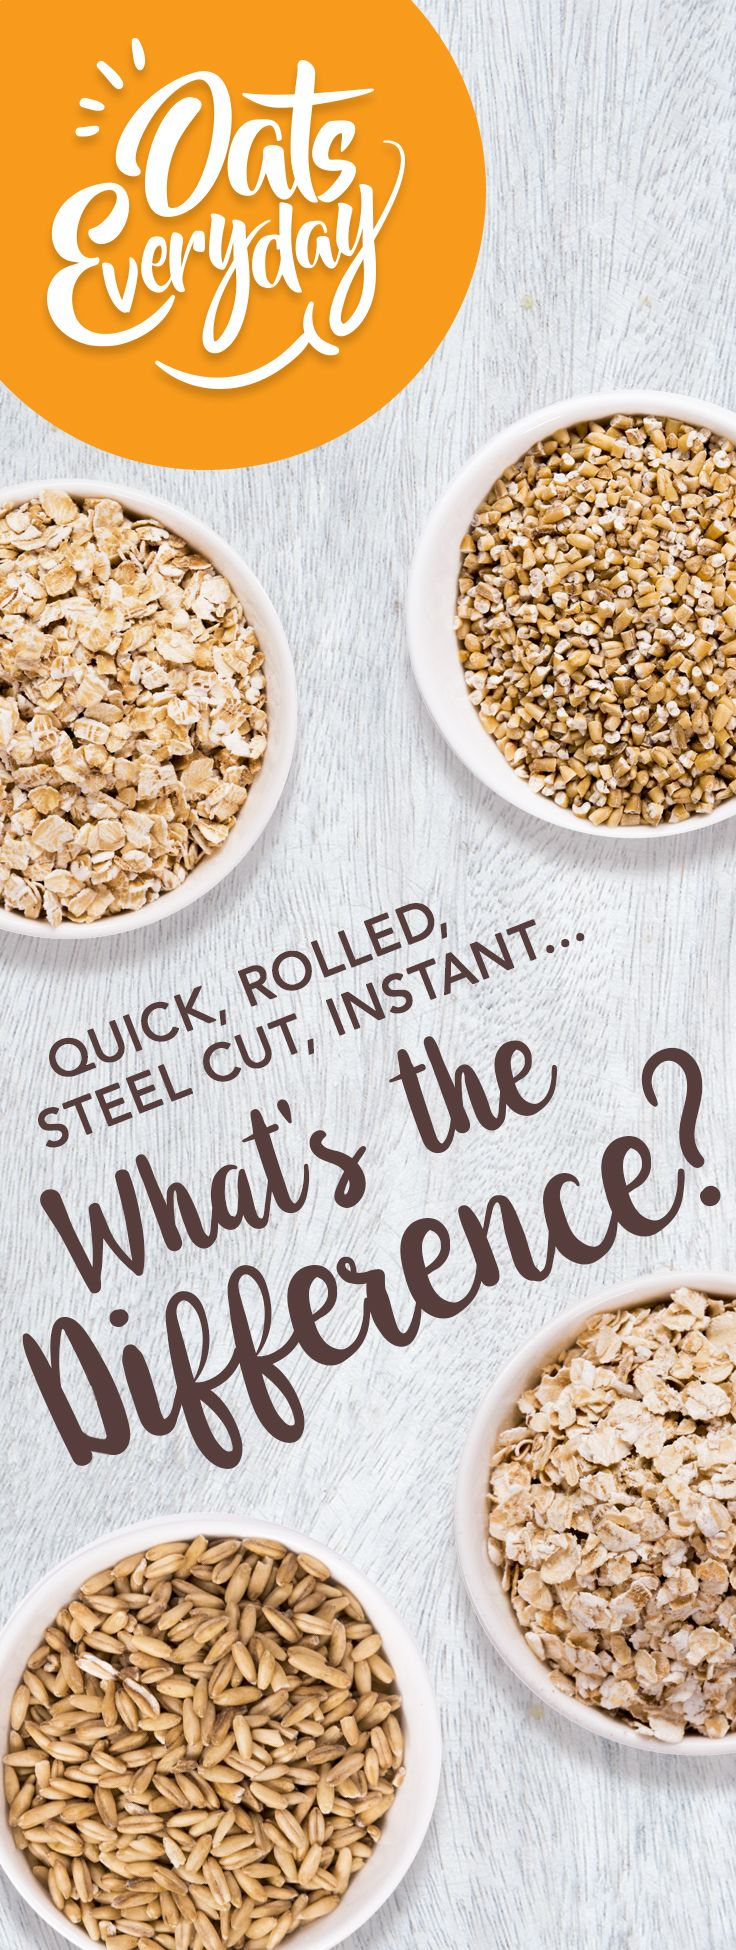 Quick, rolled, steel cut, instant – what's the difference? We give a breakdown of the many great types of oats.